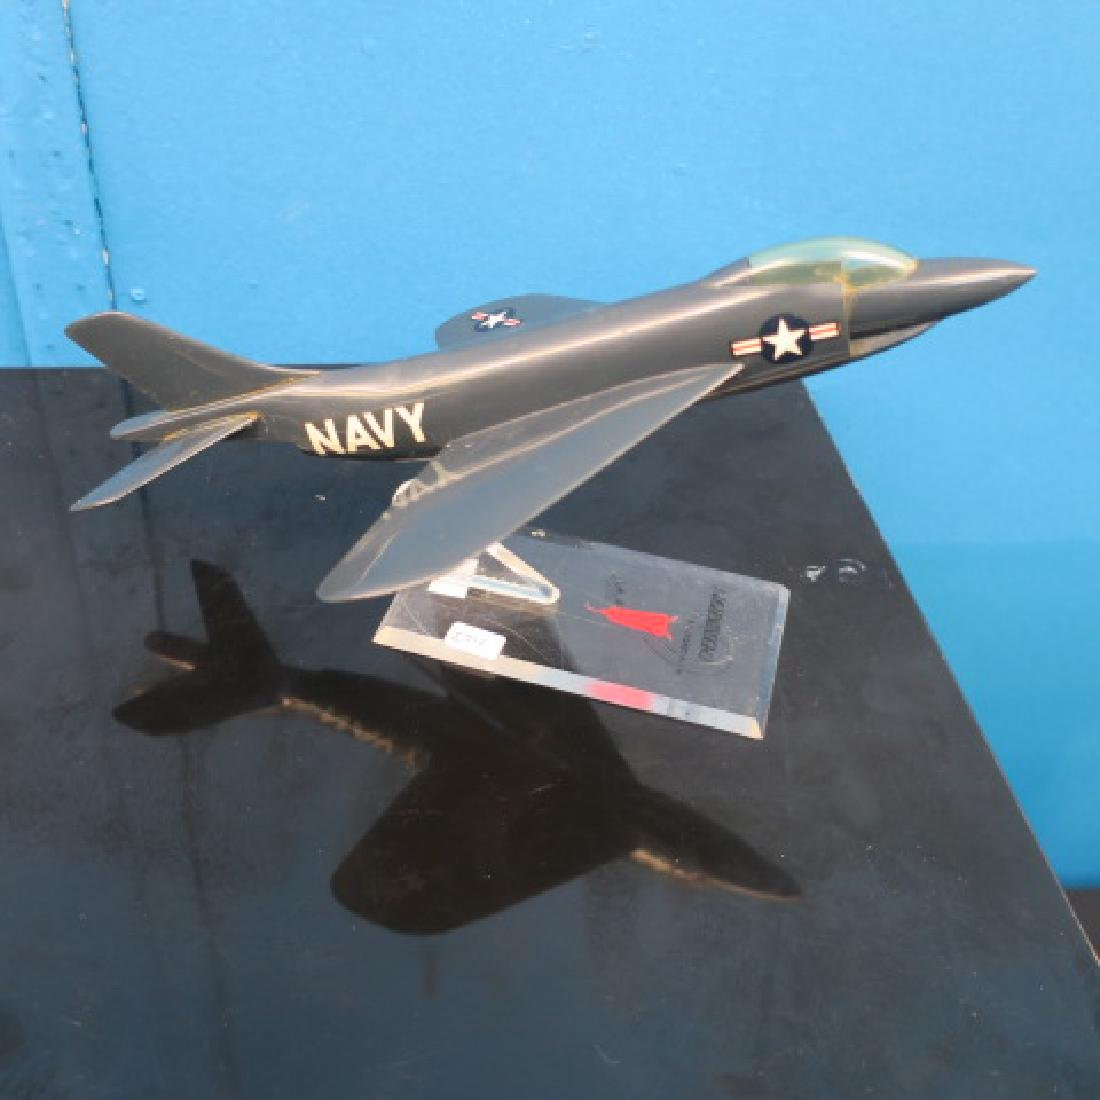 Manufacturers Models of F3H DEAMON & A4D SKYHAWK: - 3